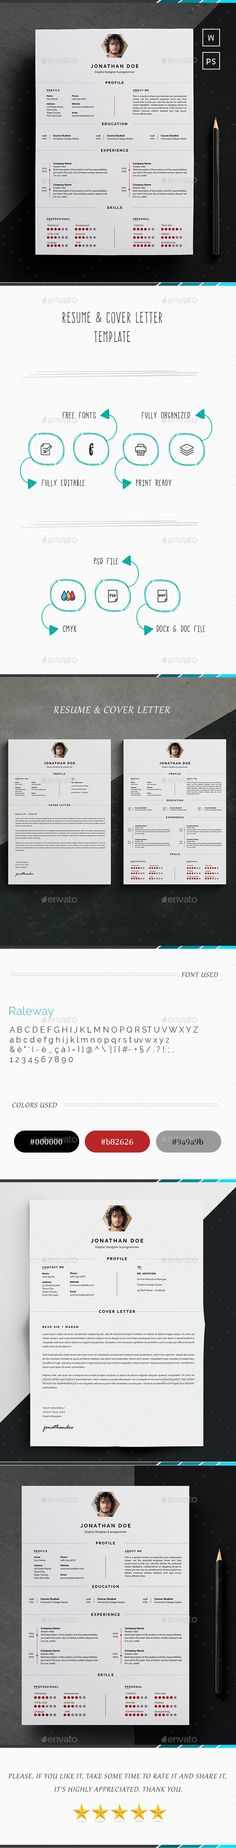 Resume Creative resume templates - creative templates for resumes